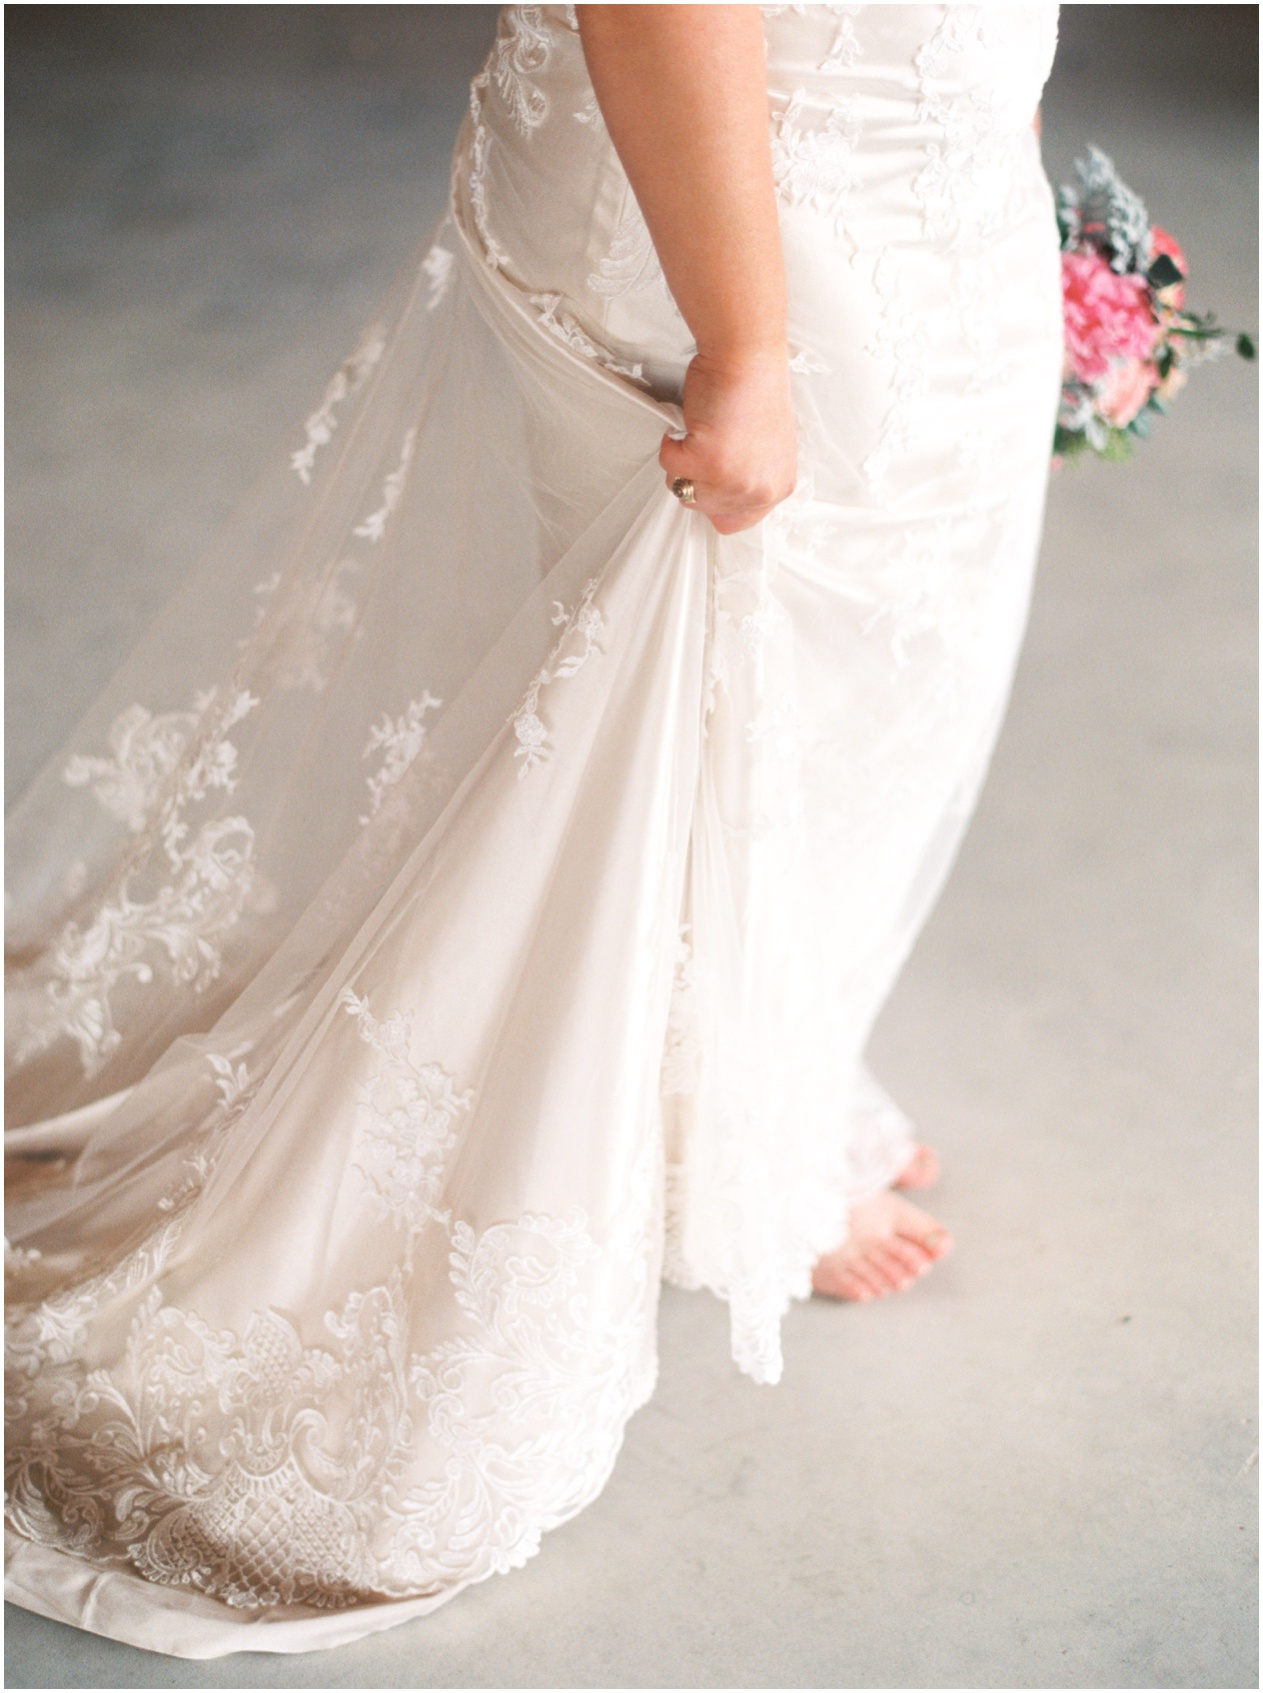 Sarah Best Photography - Claire's Bridals - The Amish Barn at Edge-10_STP.jpg